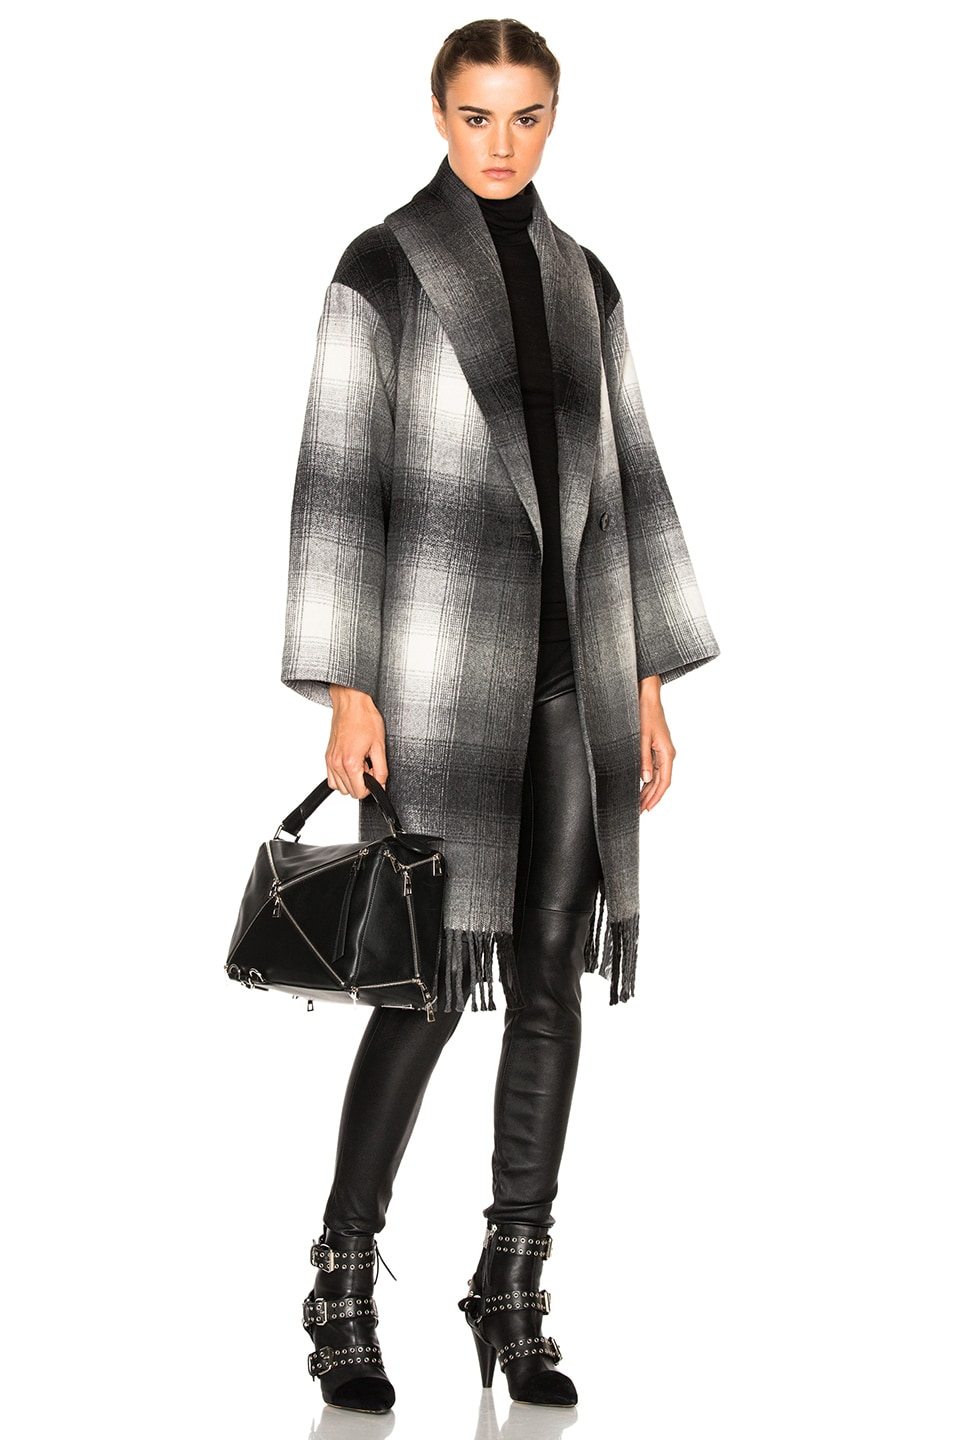 Image 1 of T by Alexander Wang Oversized Shawl Coat in Black & White